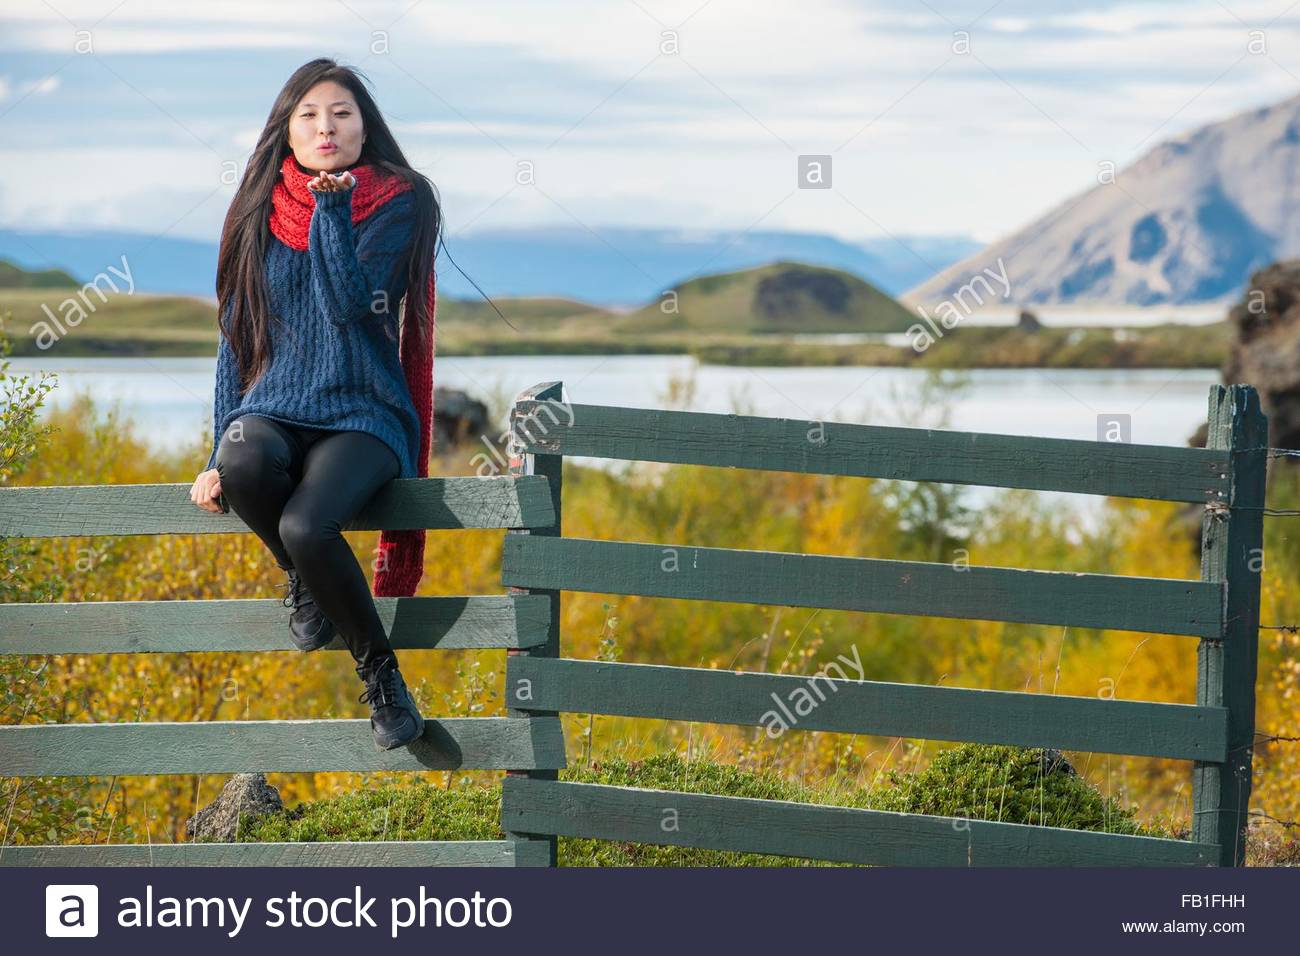 Mid adult woman wearing red wool scarf sitting on fence looking at camera blowing kiss, Myvatn, North Iceland, Iceland - Stock Image